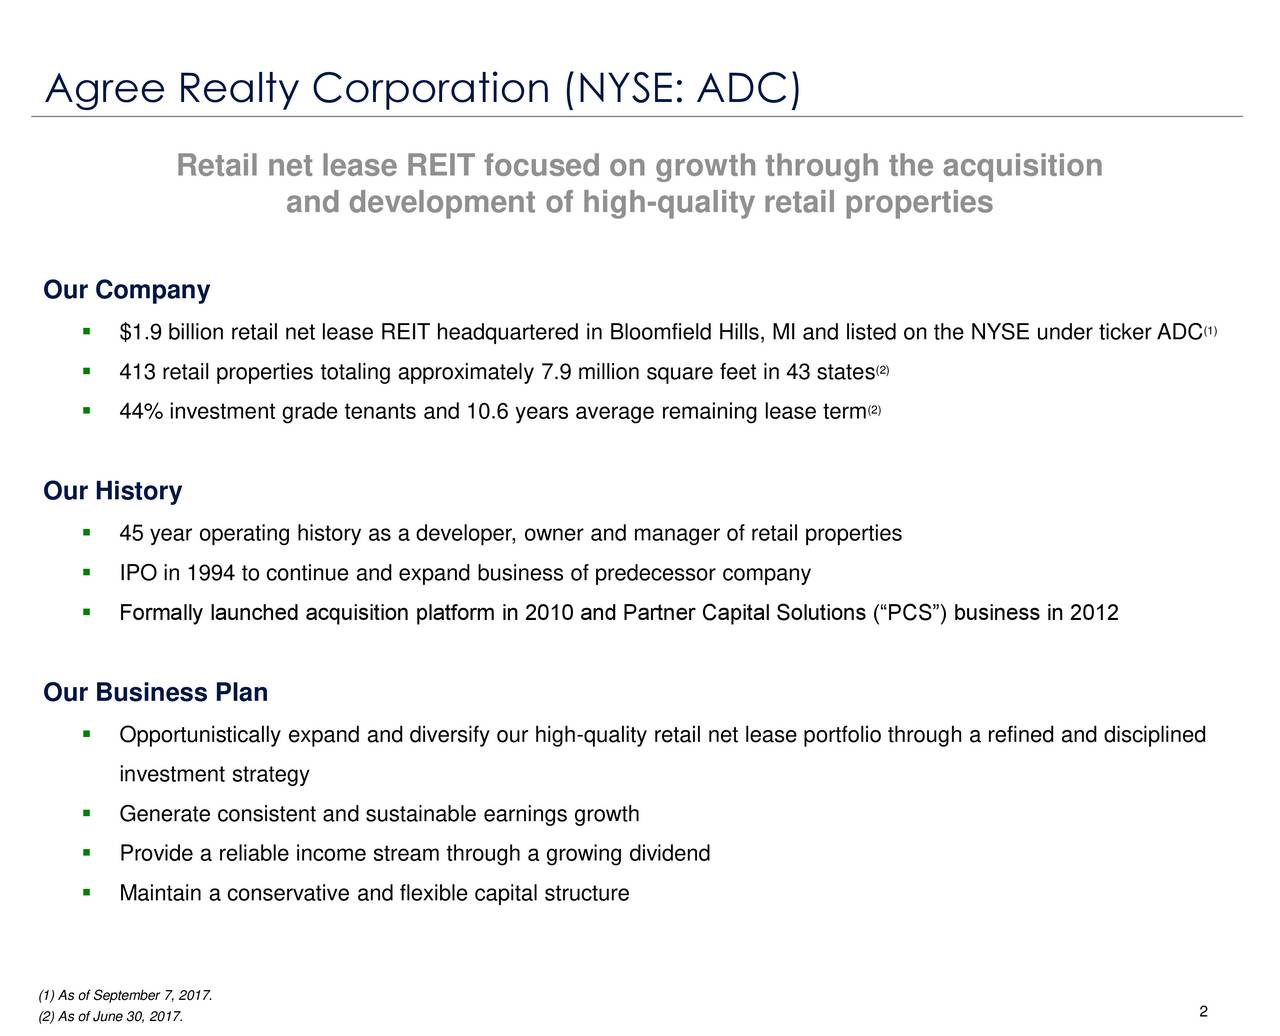 Agree realty corporation adc presents at wells fargo 6th annual beliefs retail net lease reit focused on growth through the acquisition and development of high quality platinumwayz